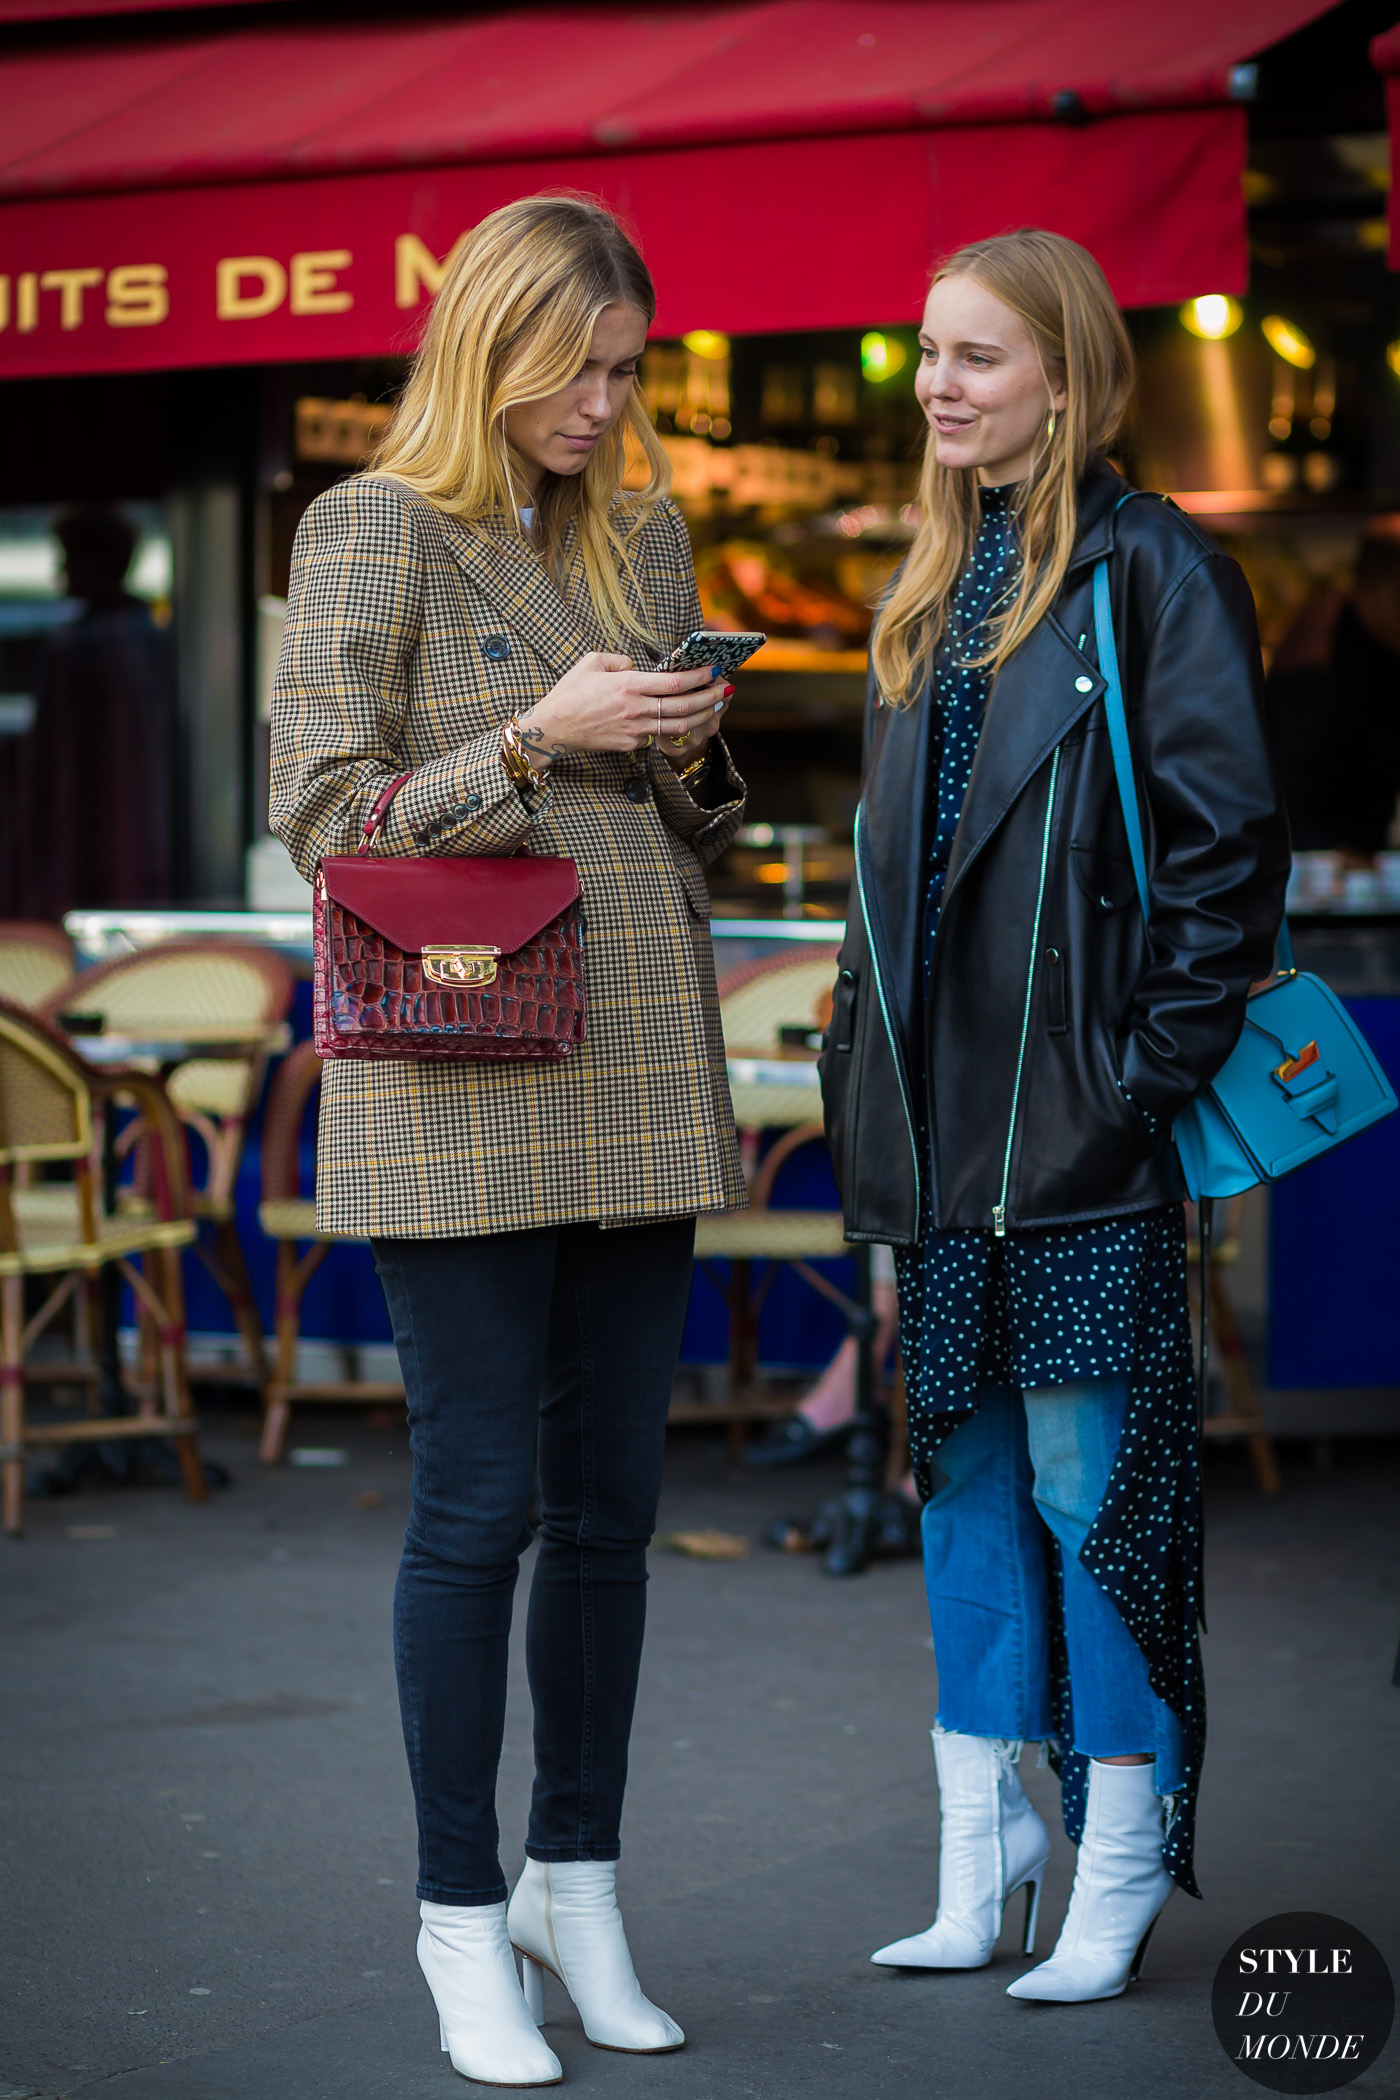 Pernille-Teisbaek-and-Alexandra-Carl-by-STYLEDUMONDE-Street-Style-Fashion-Photography0E2A6994